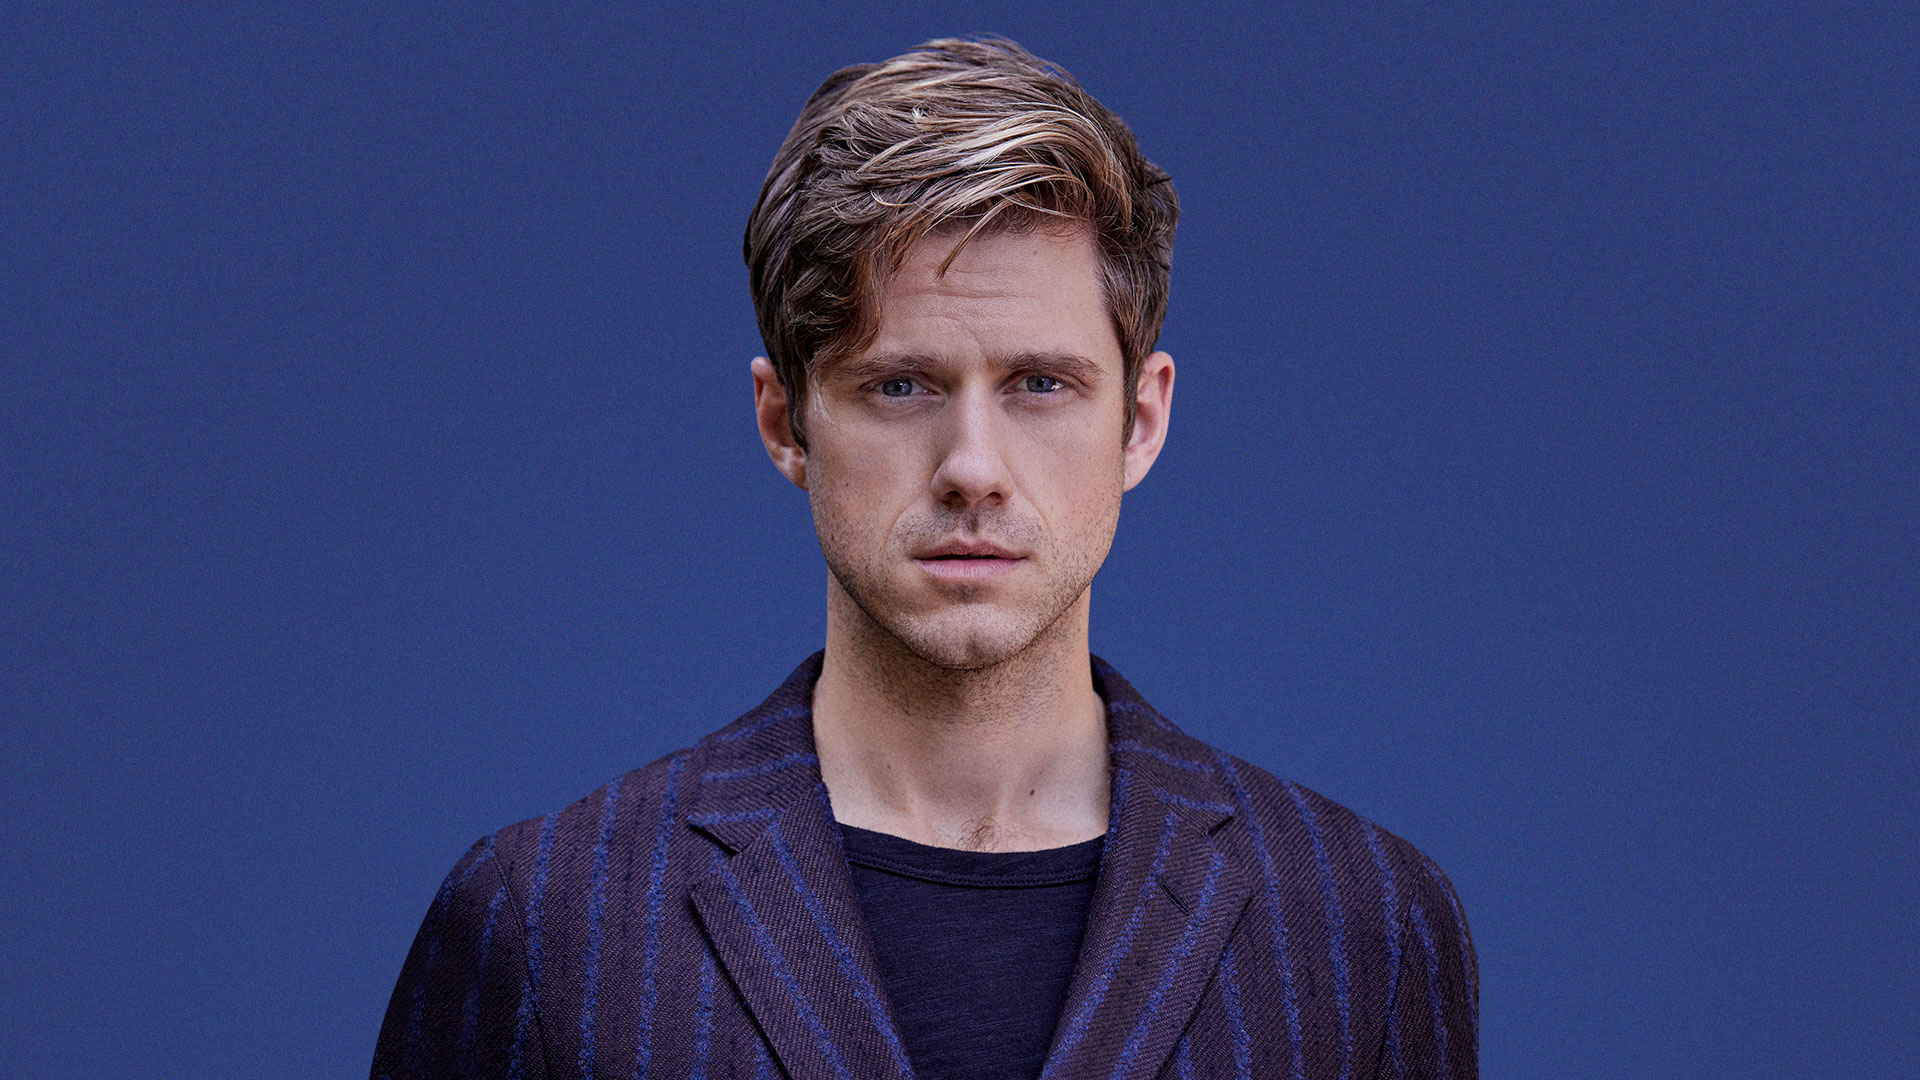 Aaron Tveit's Non-New Year's Resolutions